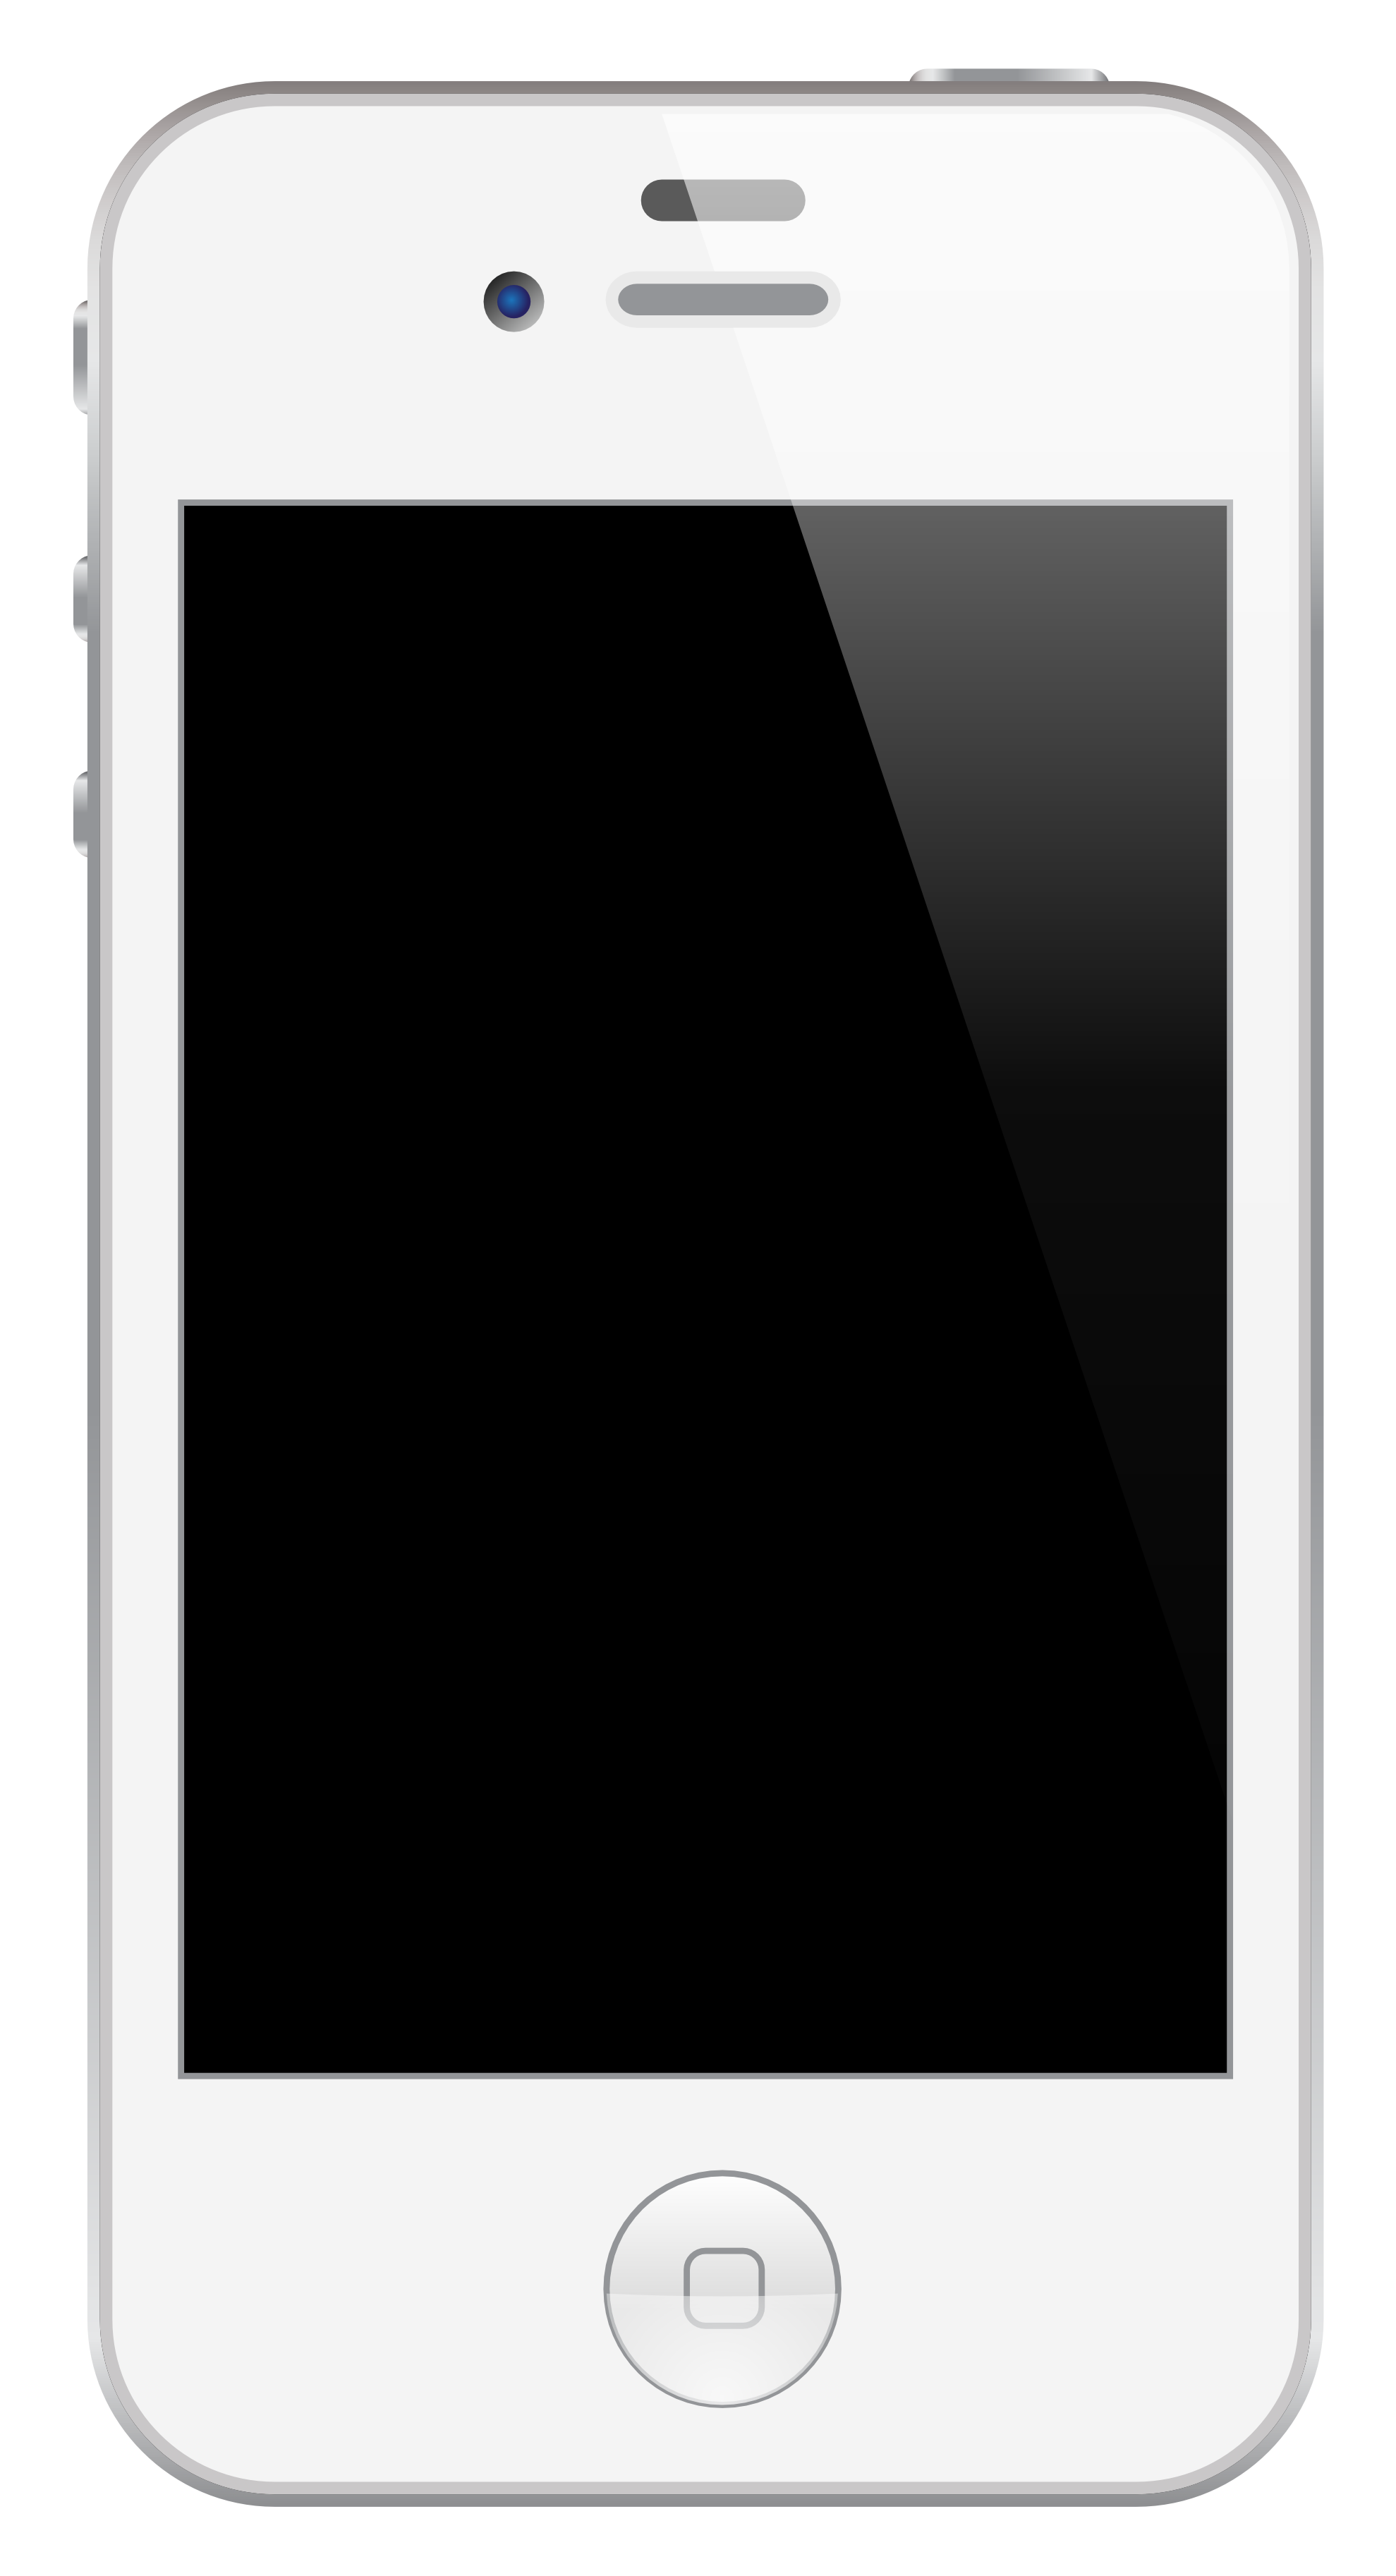 Live clipart for iphone 4s free download.